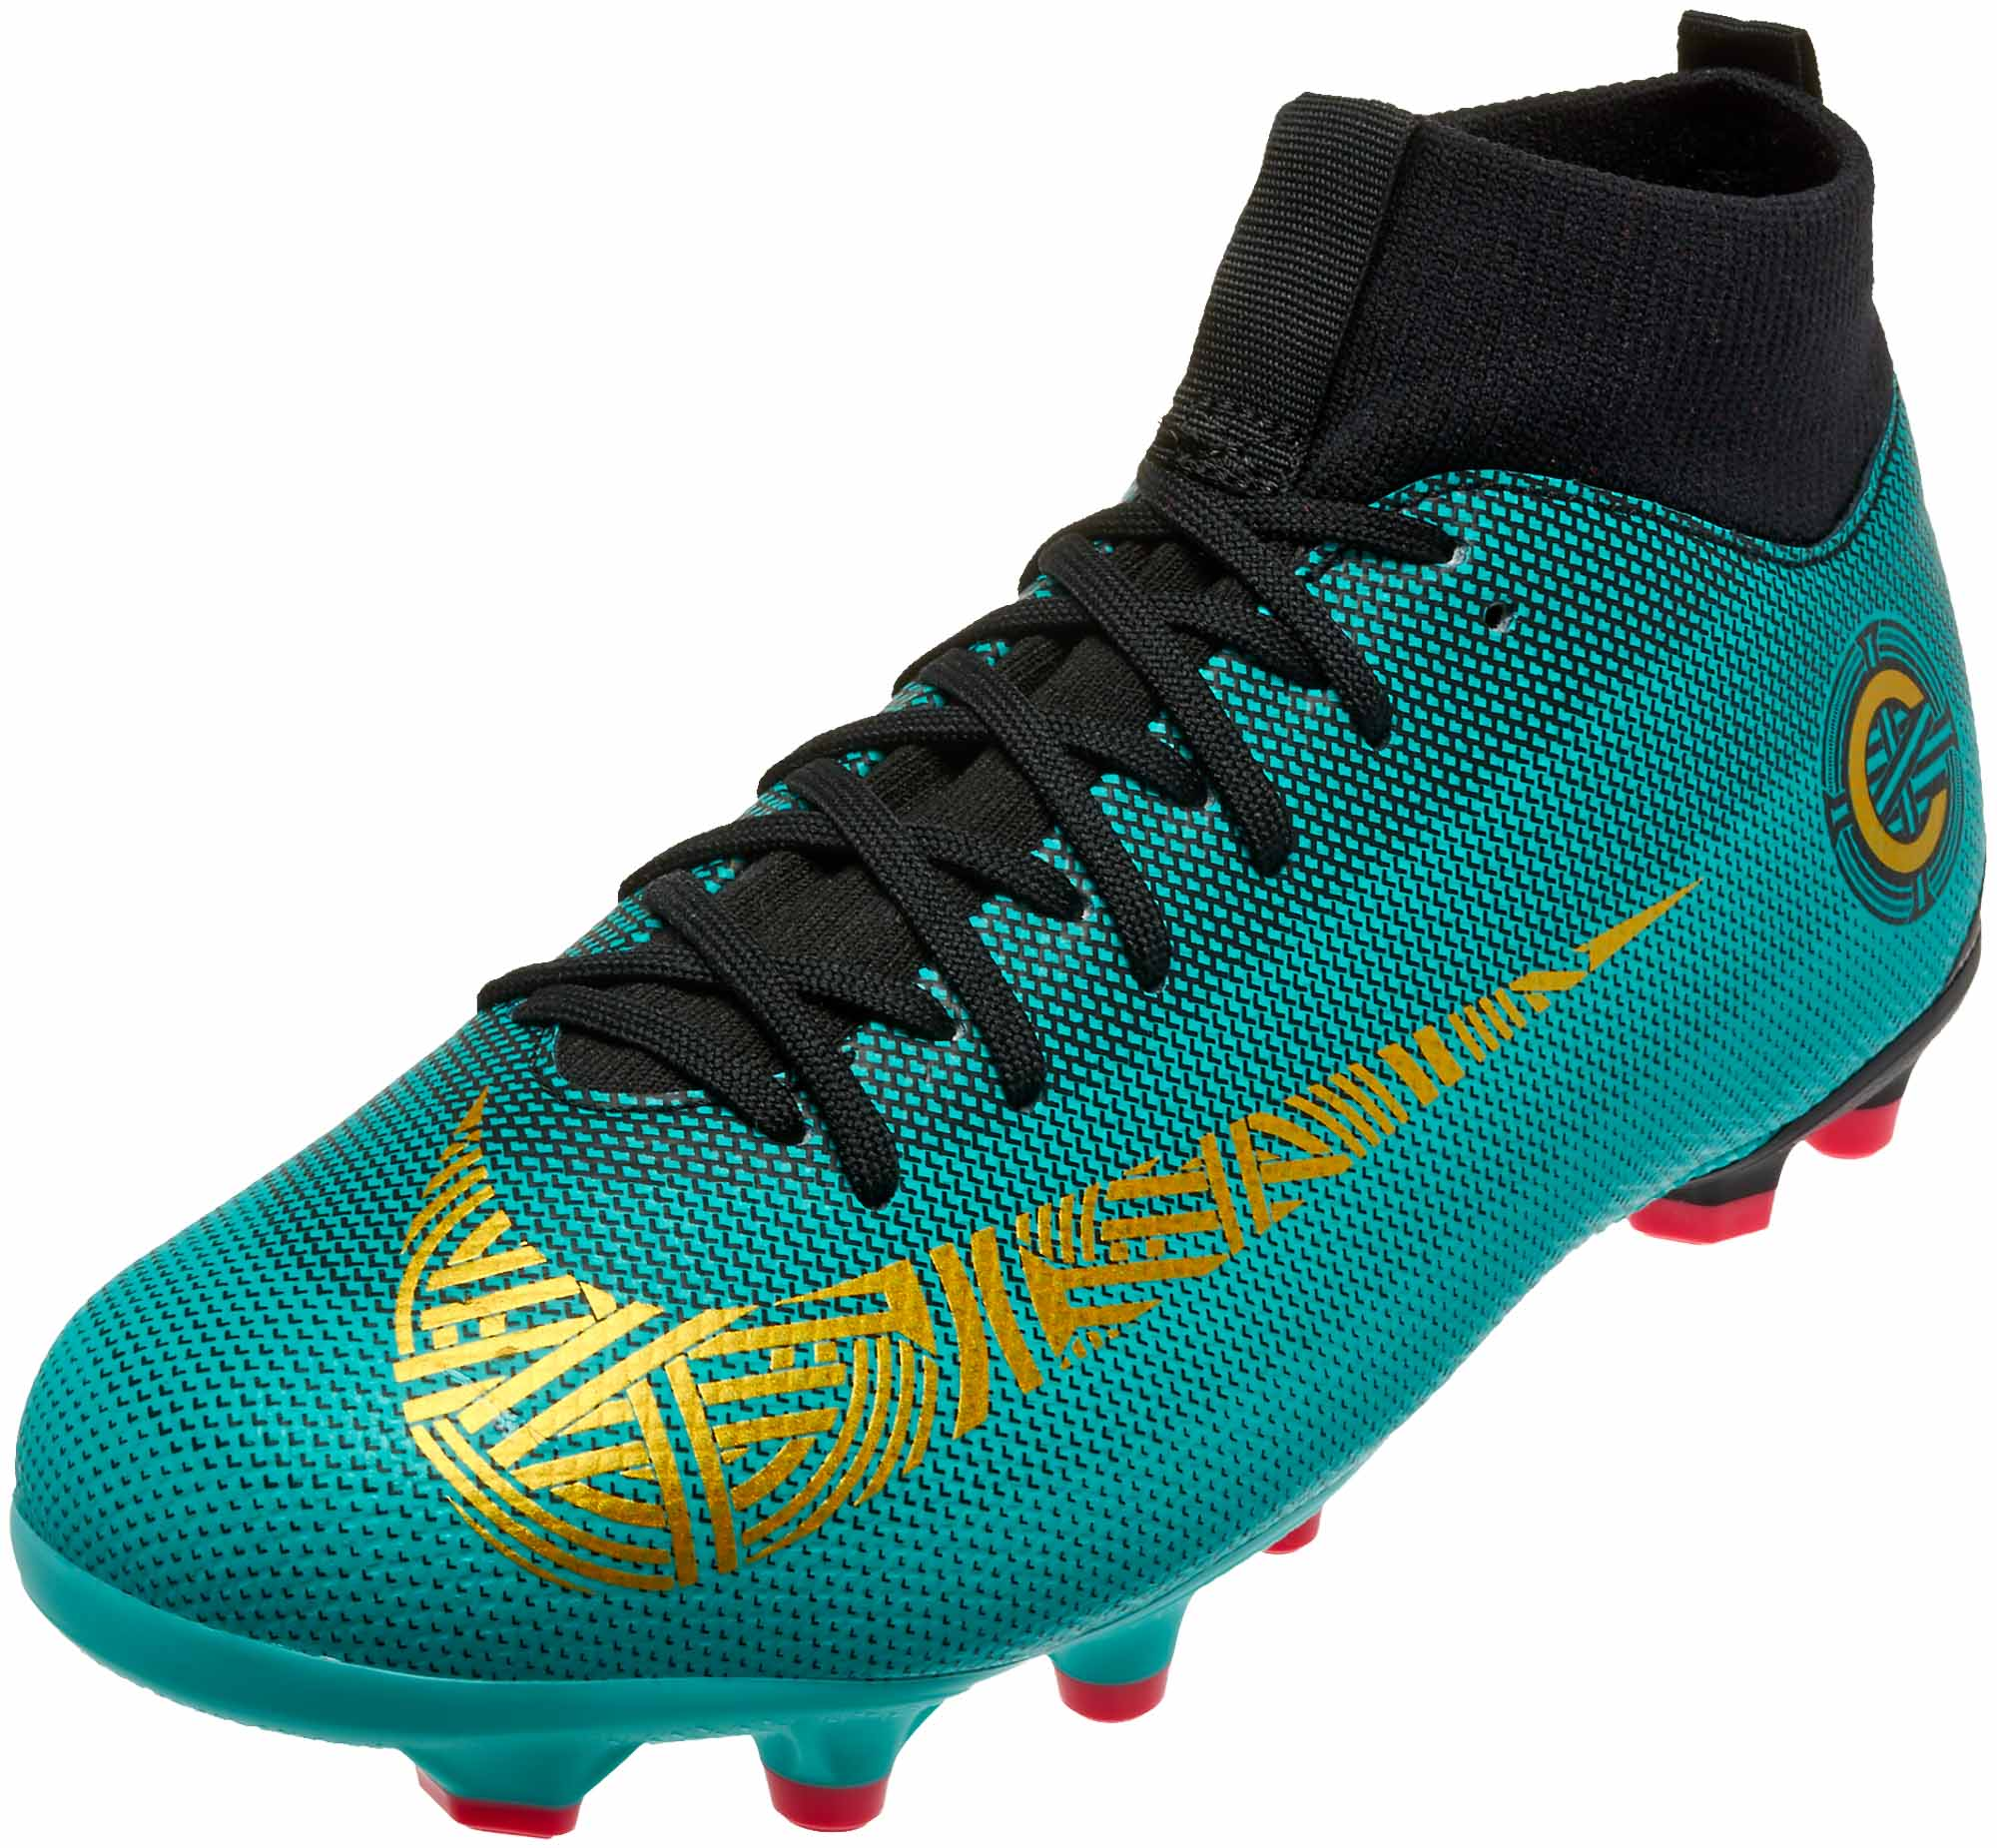 3e9cb49031b6 Nike Mercurial Superfly 6 Academy MG – CR7 – Youth – Clear Jade Metallic  Vivid Gold Black